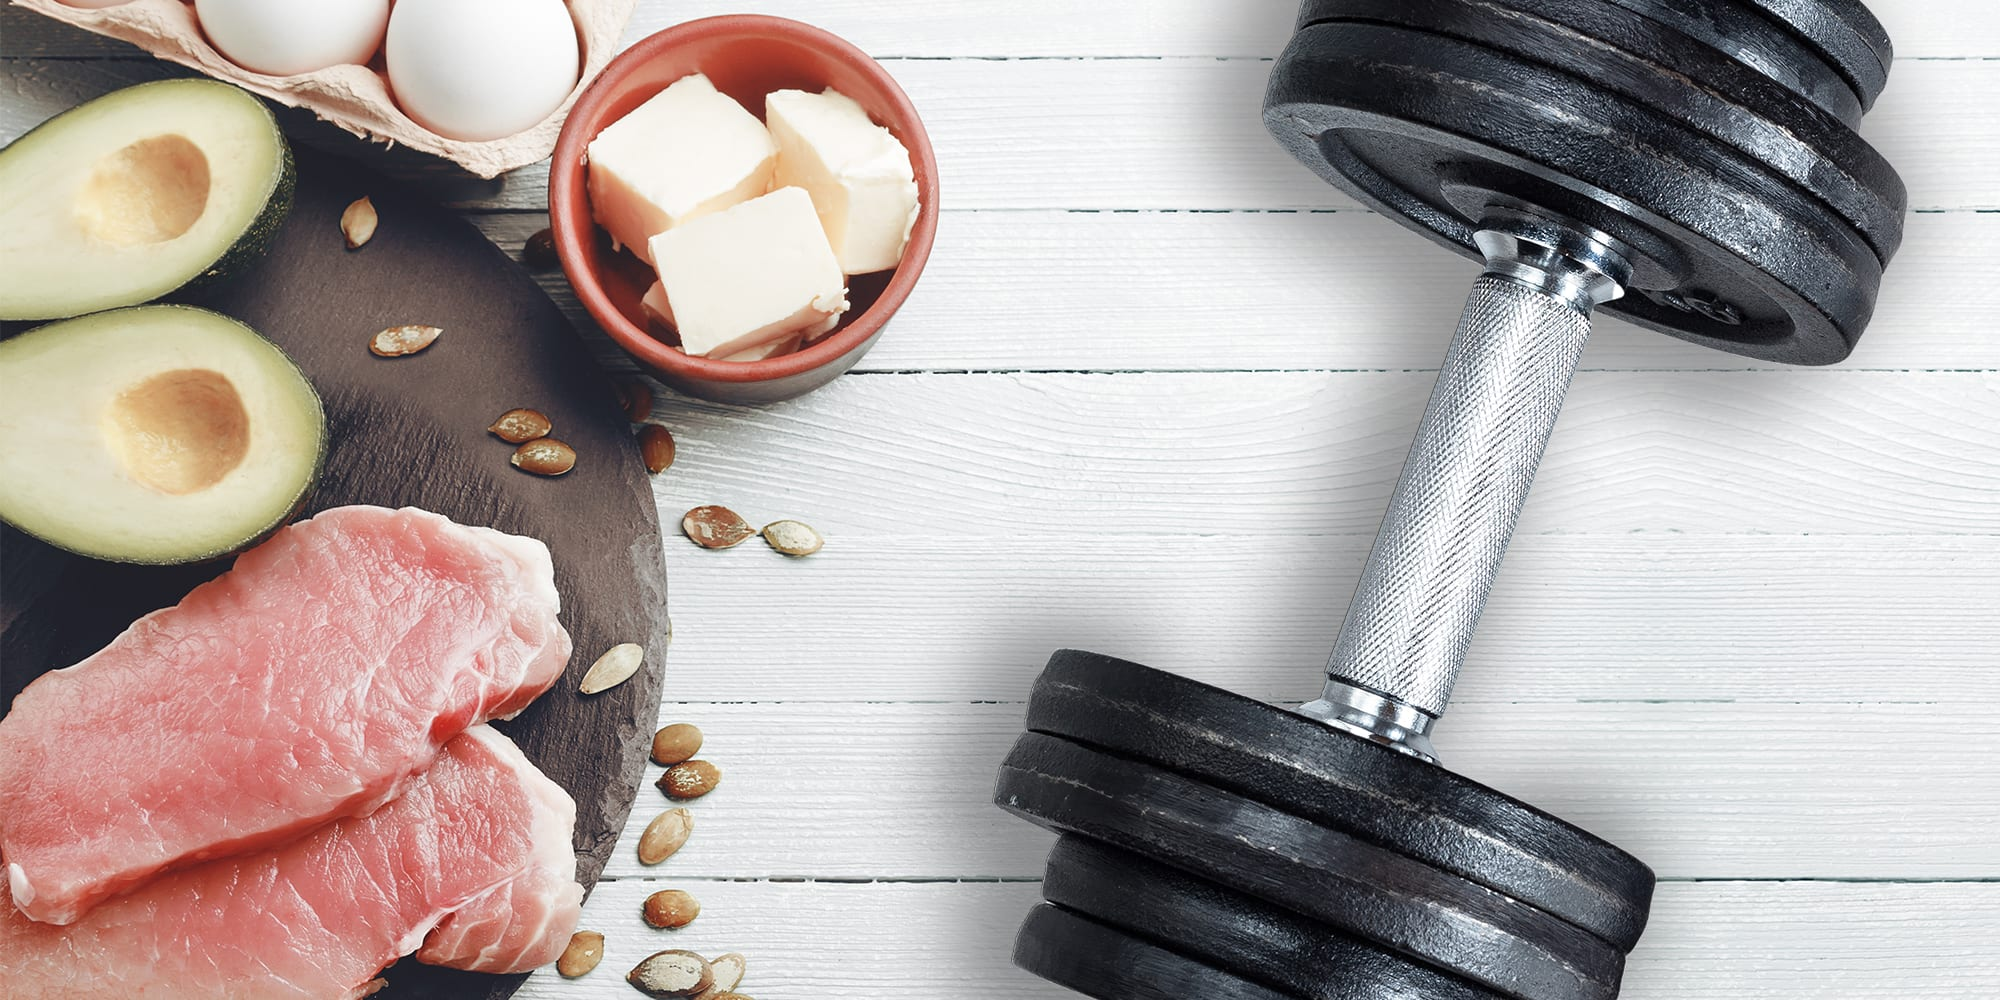 Bodybuilding on a Keto Diet: Does It Work?